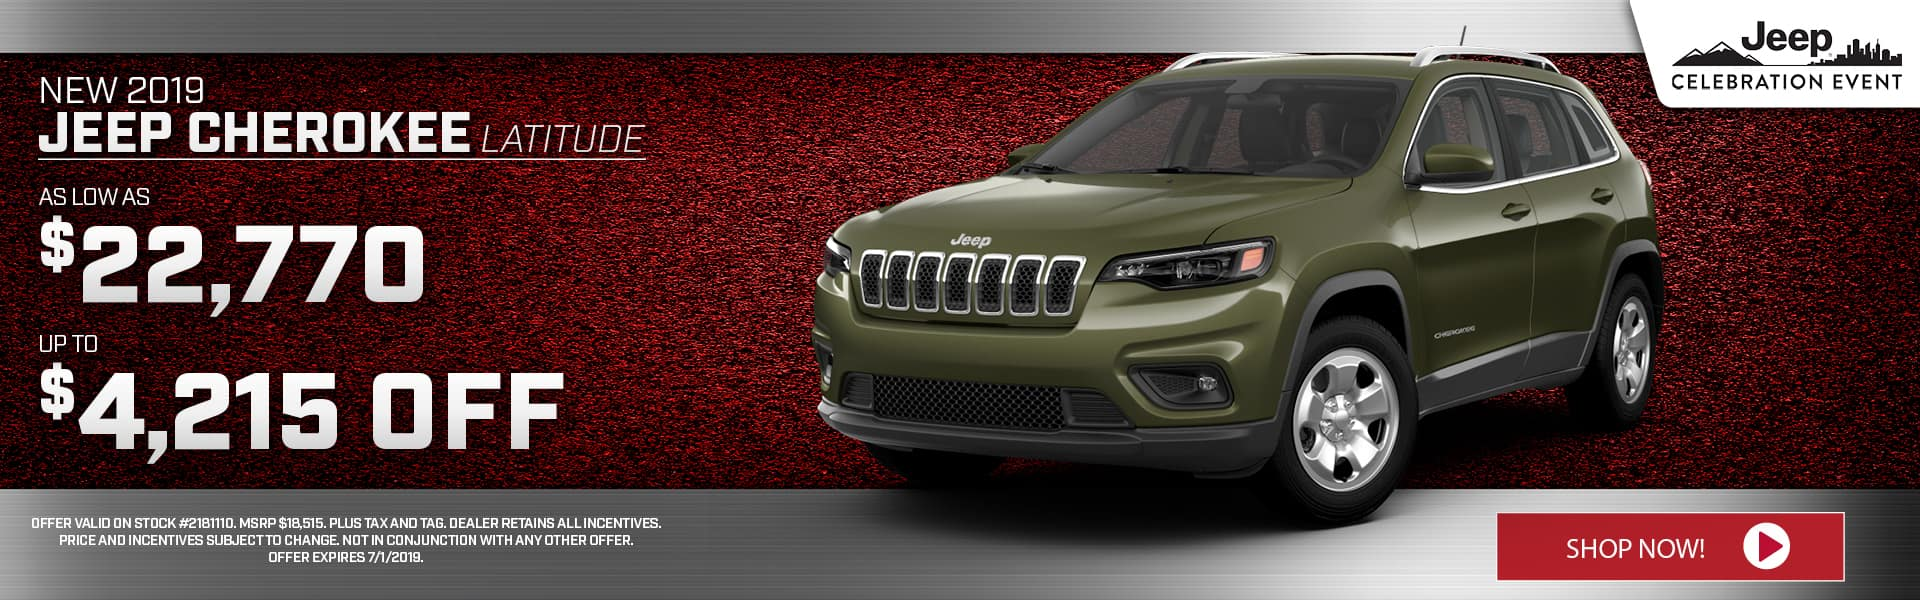 2019 Jeep Cherokee Special at Thomson Jeep in Thomson, GA